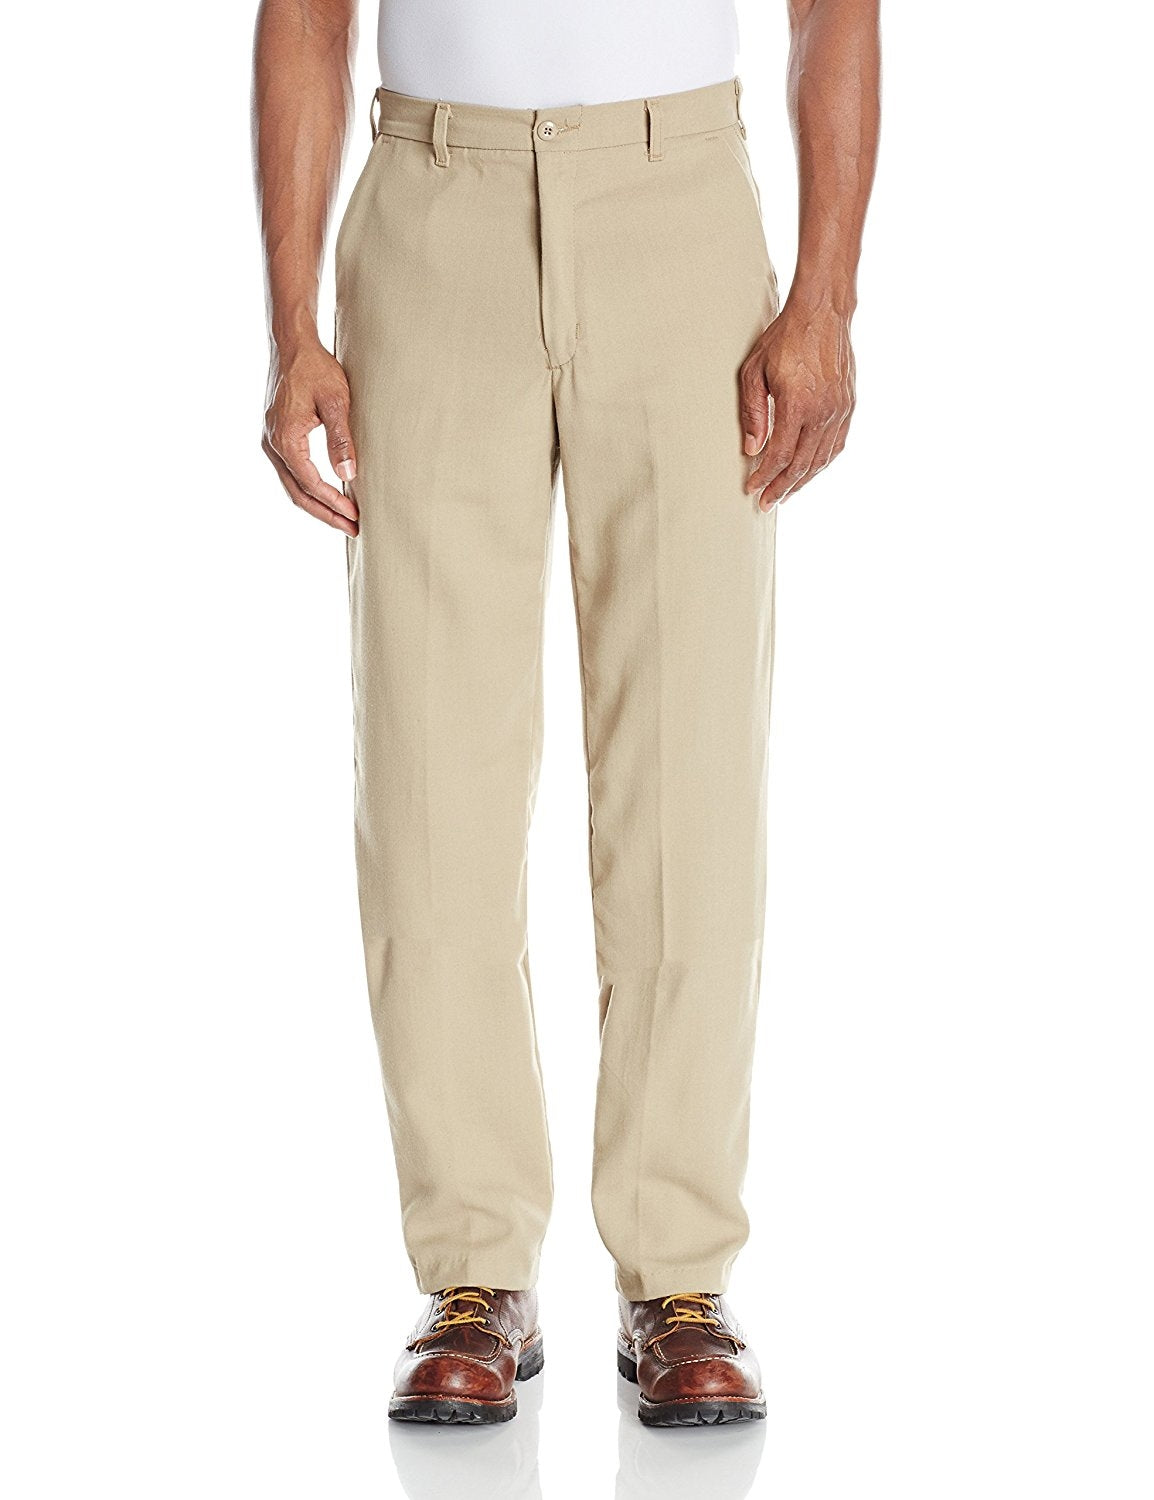 Bulwark Flame Resistant 5.8 oz CoolTouch Mens Work Pant with Button Closure